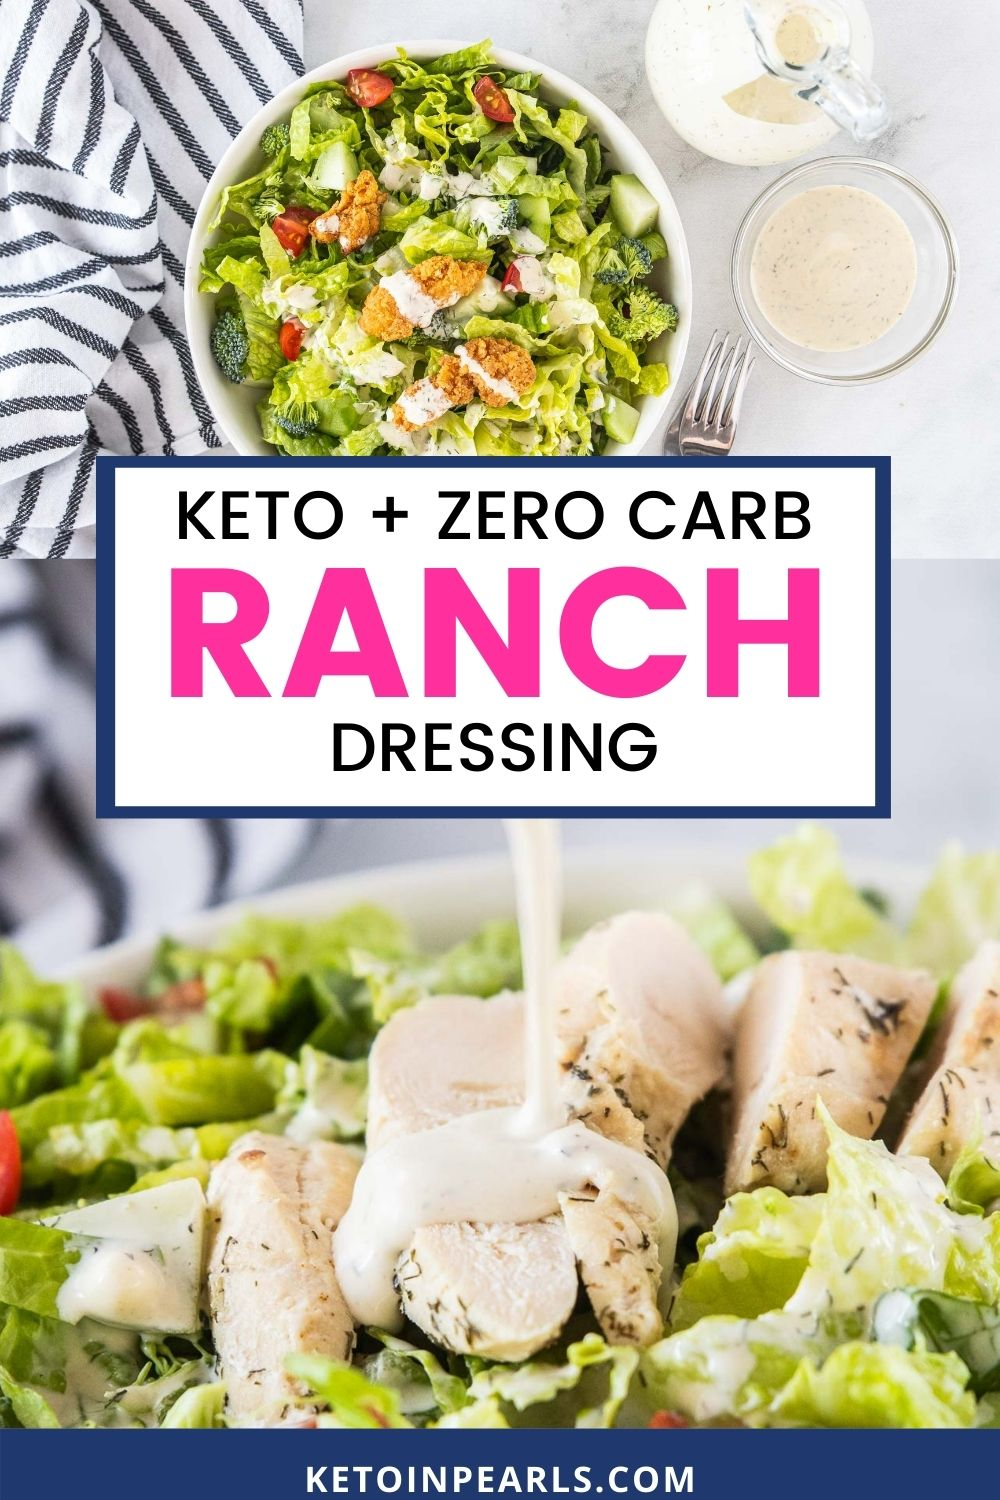 Ditch the preservative filled dressings and skip the expensive organic dressings by making this easy homemade keto ranch dressing recipe! With only 4 ingredients, you can make an entire batch of zero carb ranch dressing that's dairy free, paleo, and Whole30 approved.